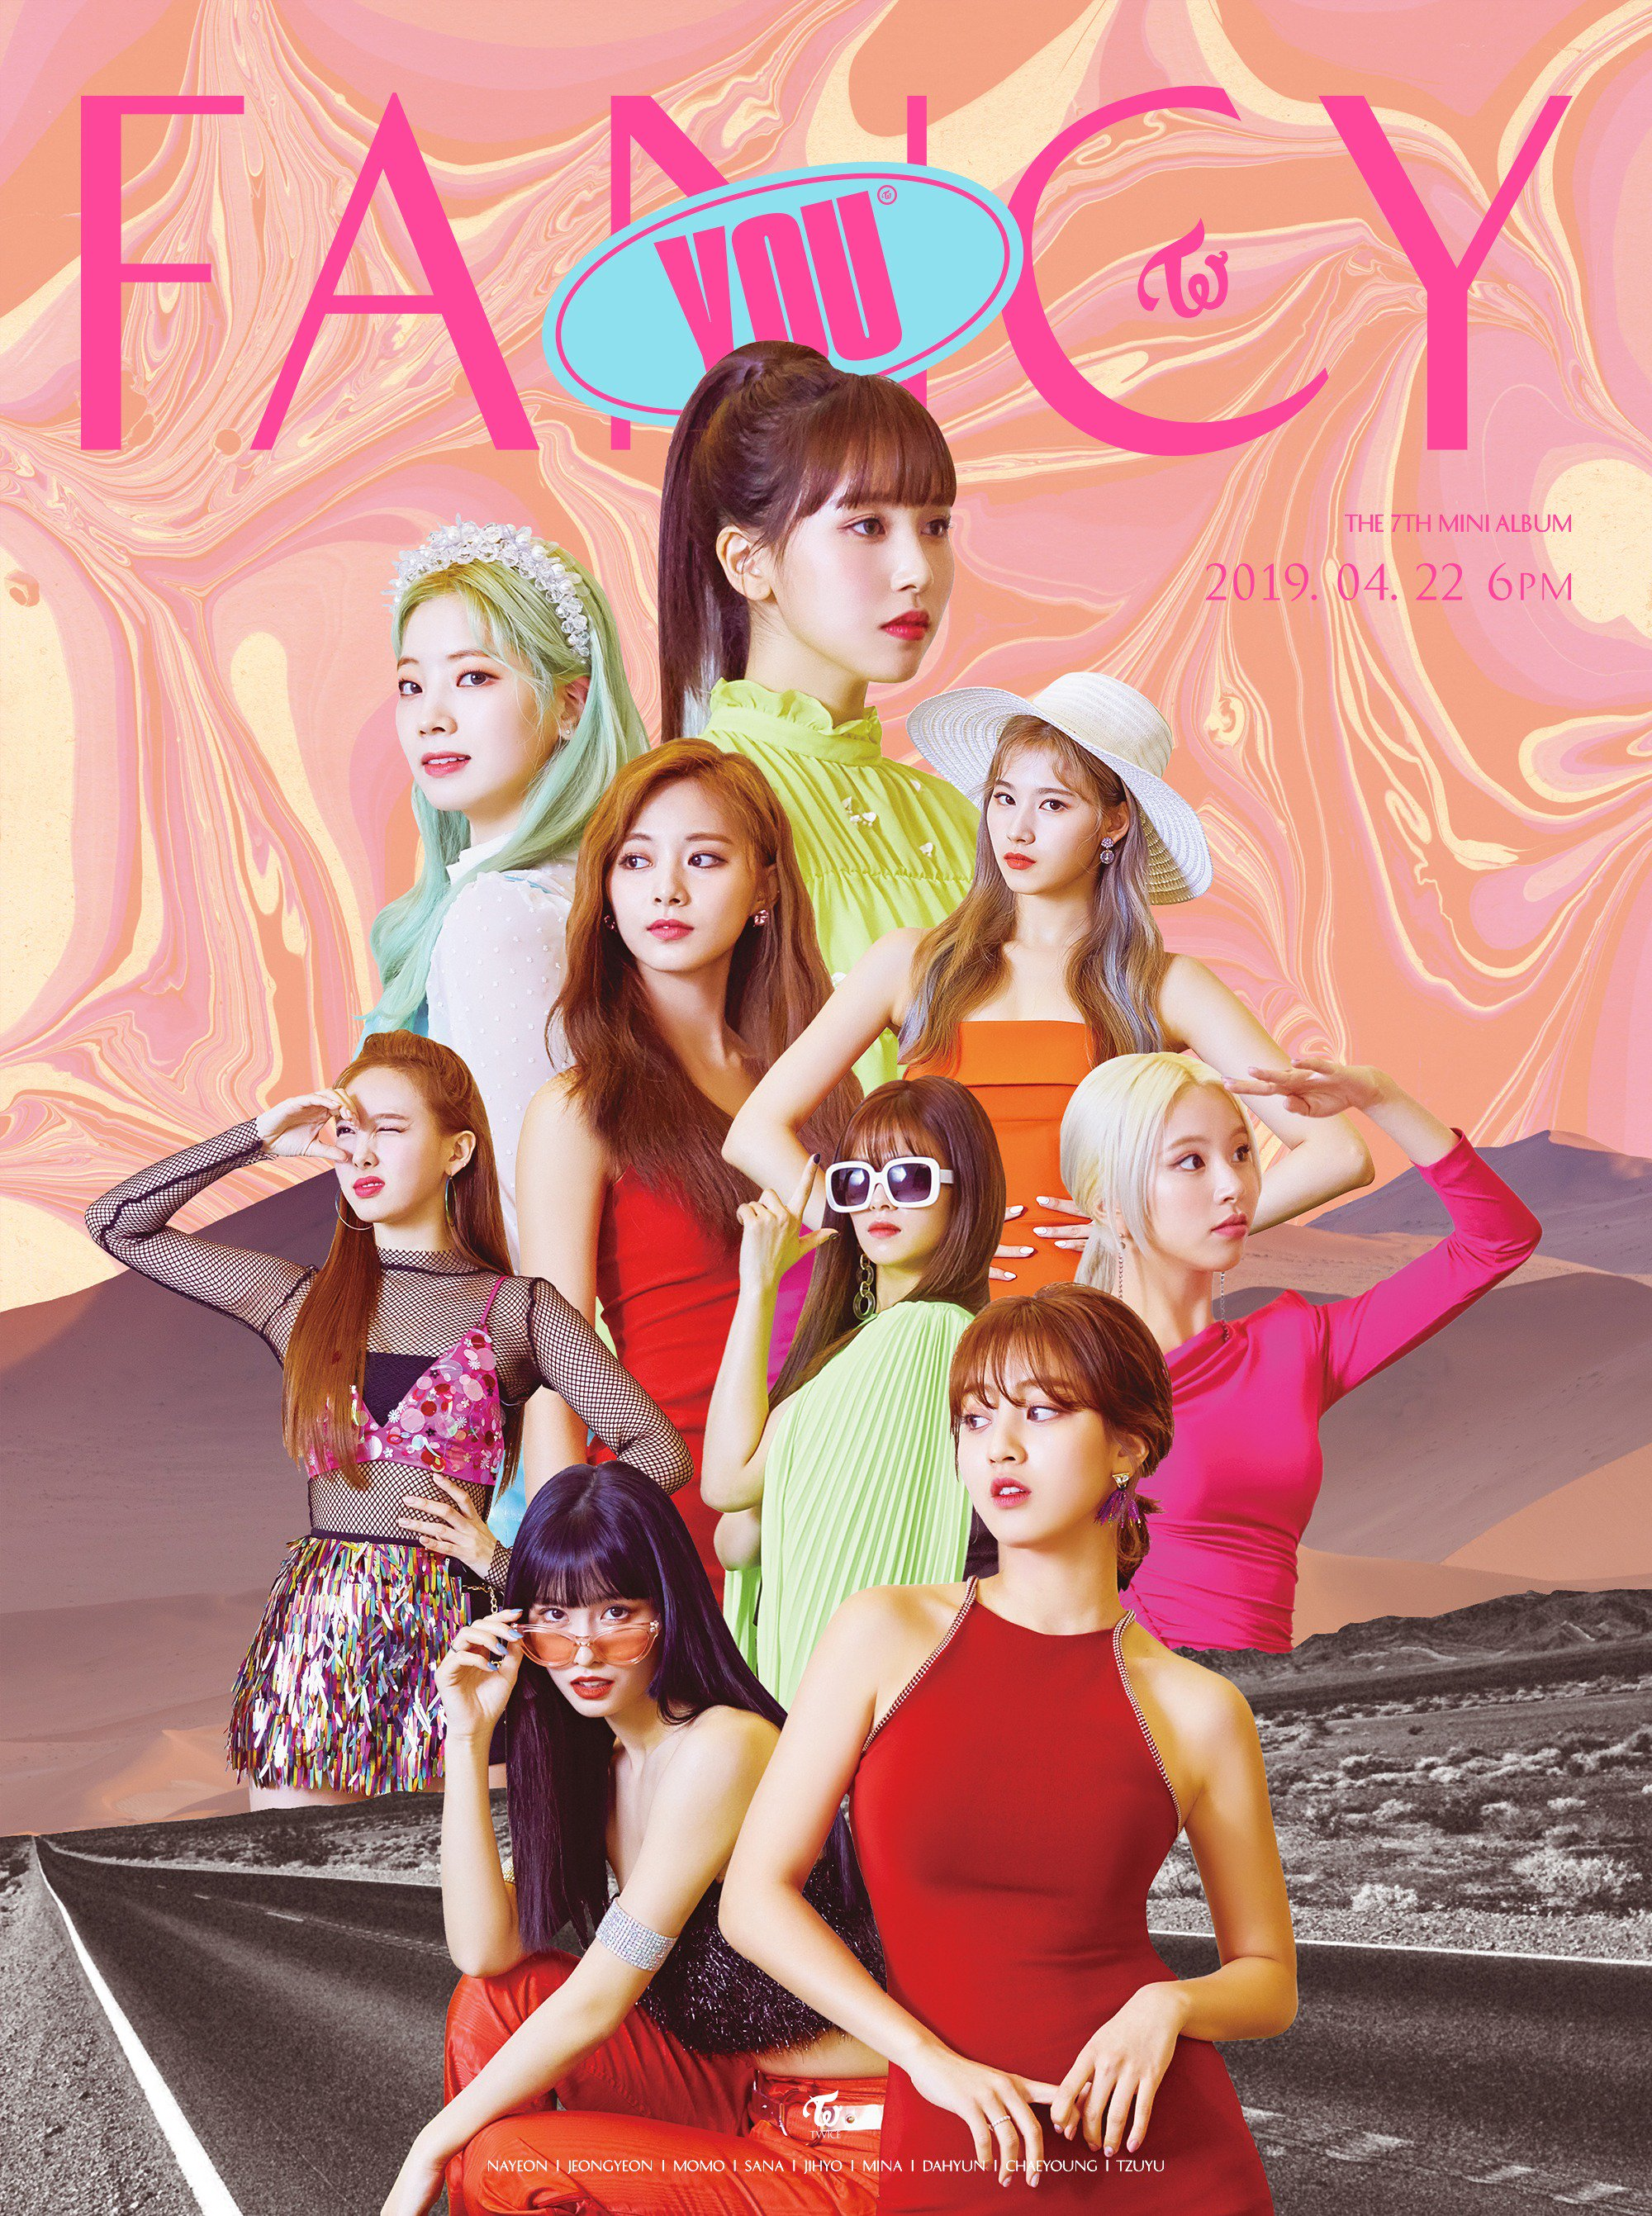 45305b458a Twice | Twice Wiki | FANDOM powered by Wikia